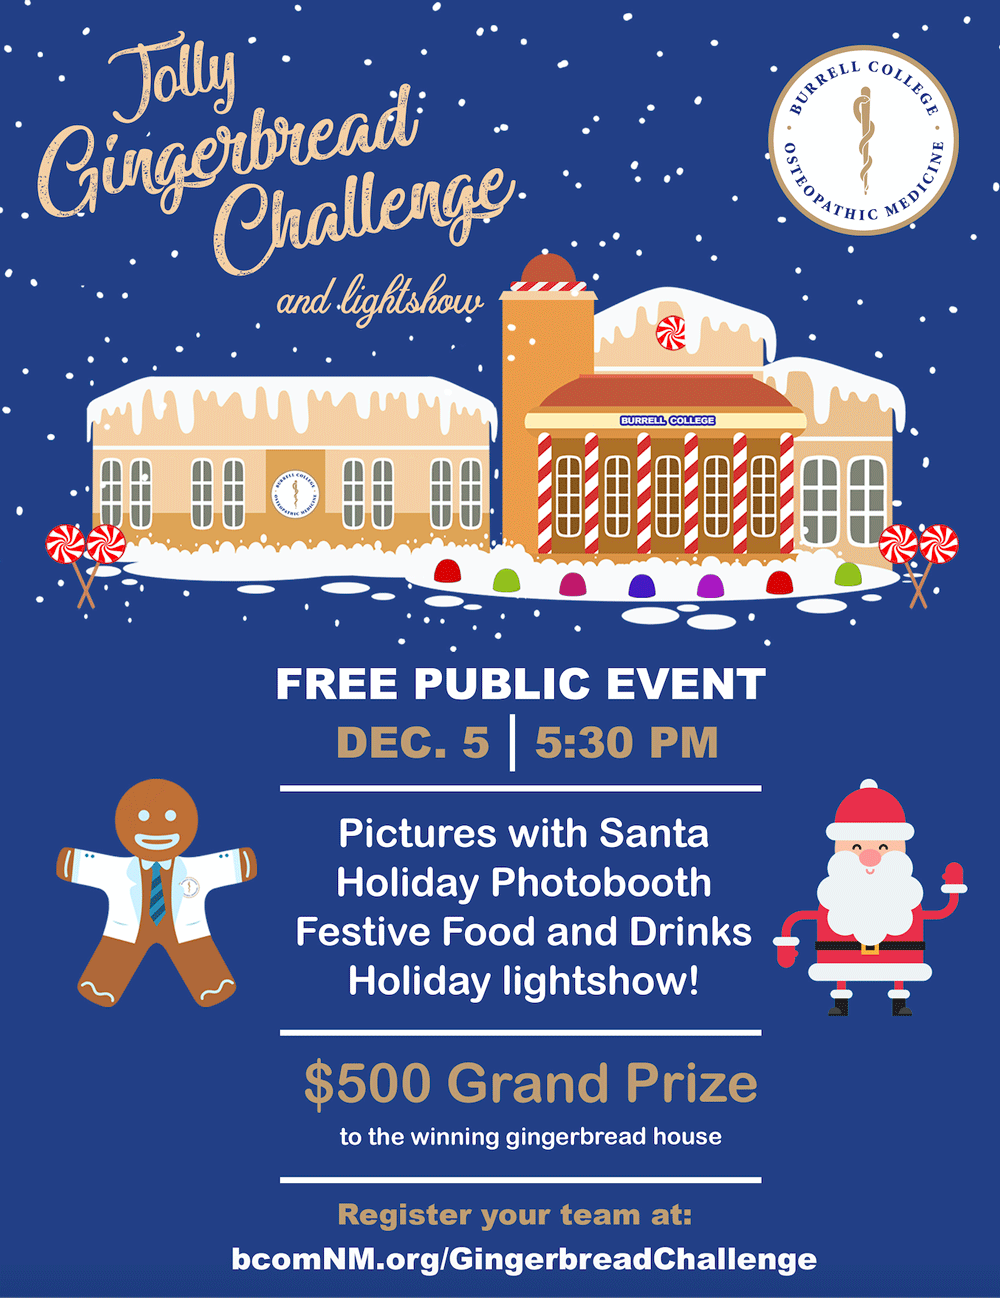 Jolly Gingerbread Challenge Flyer